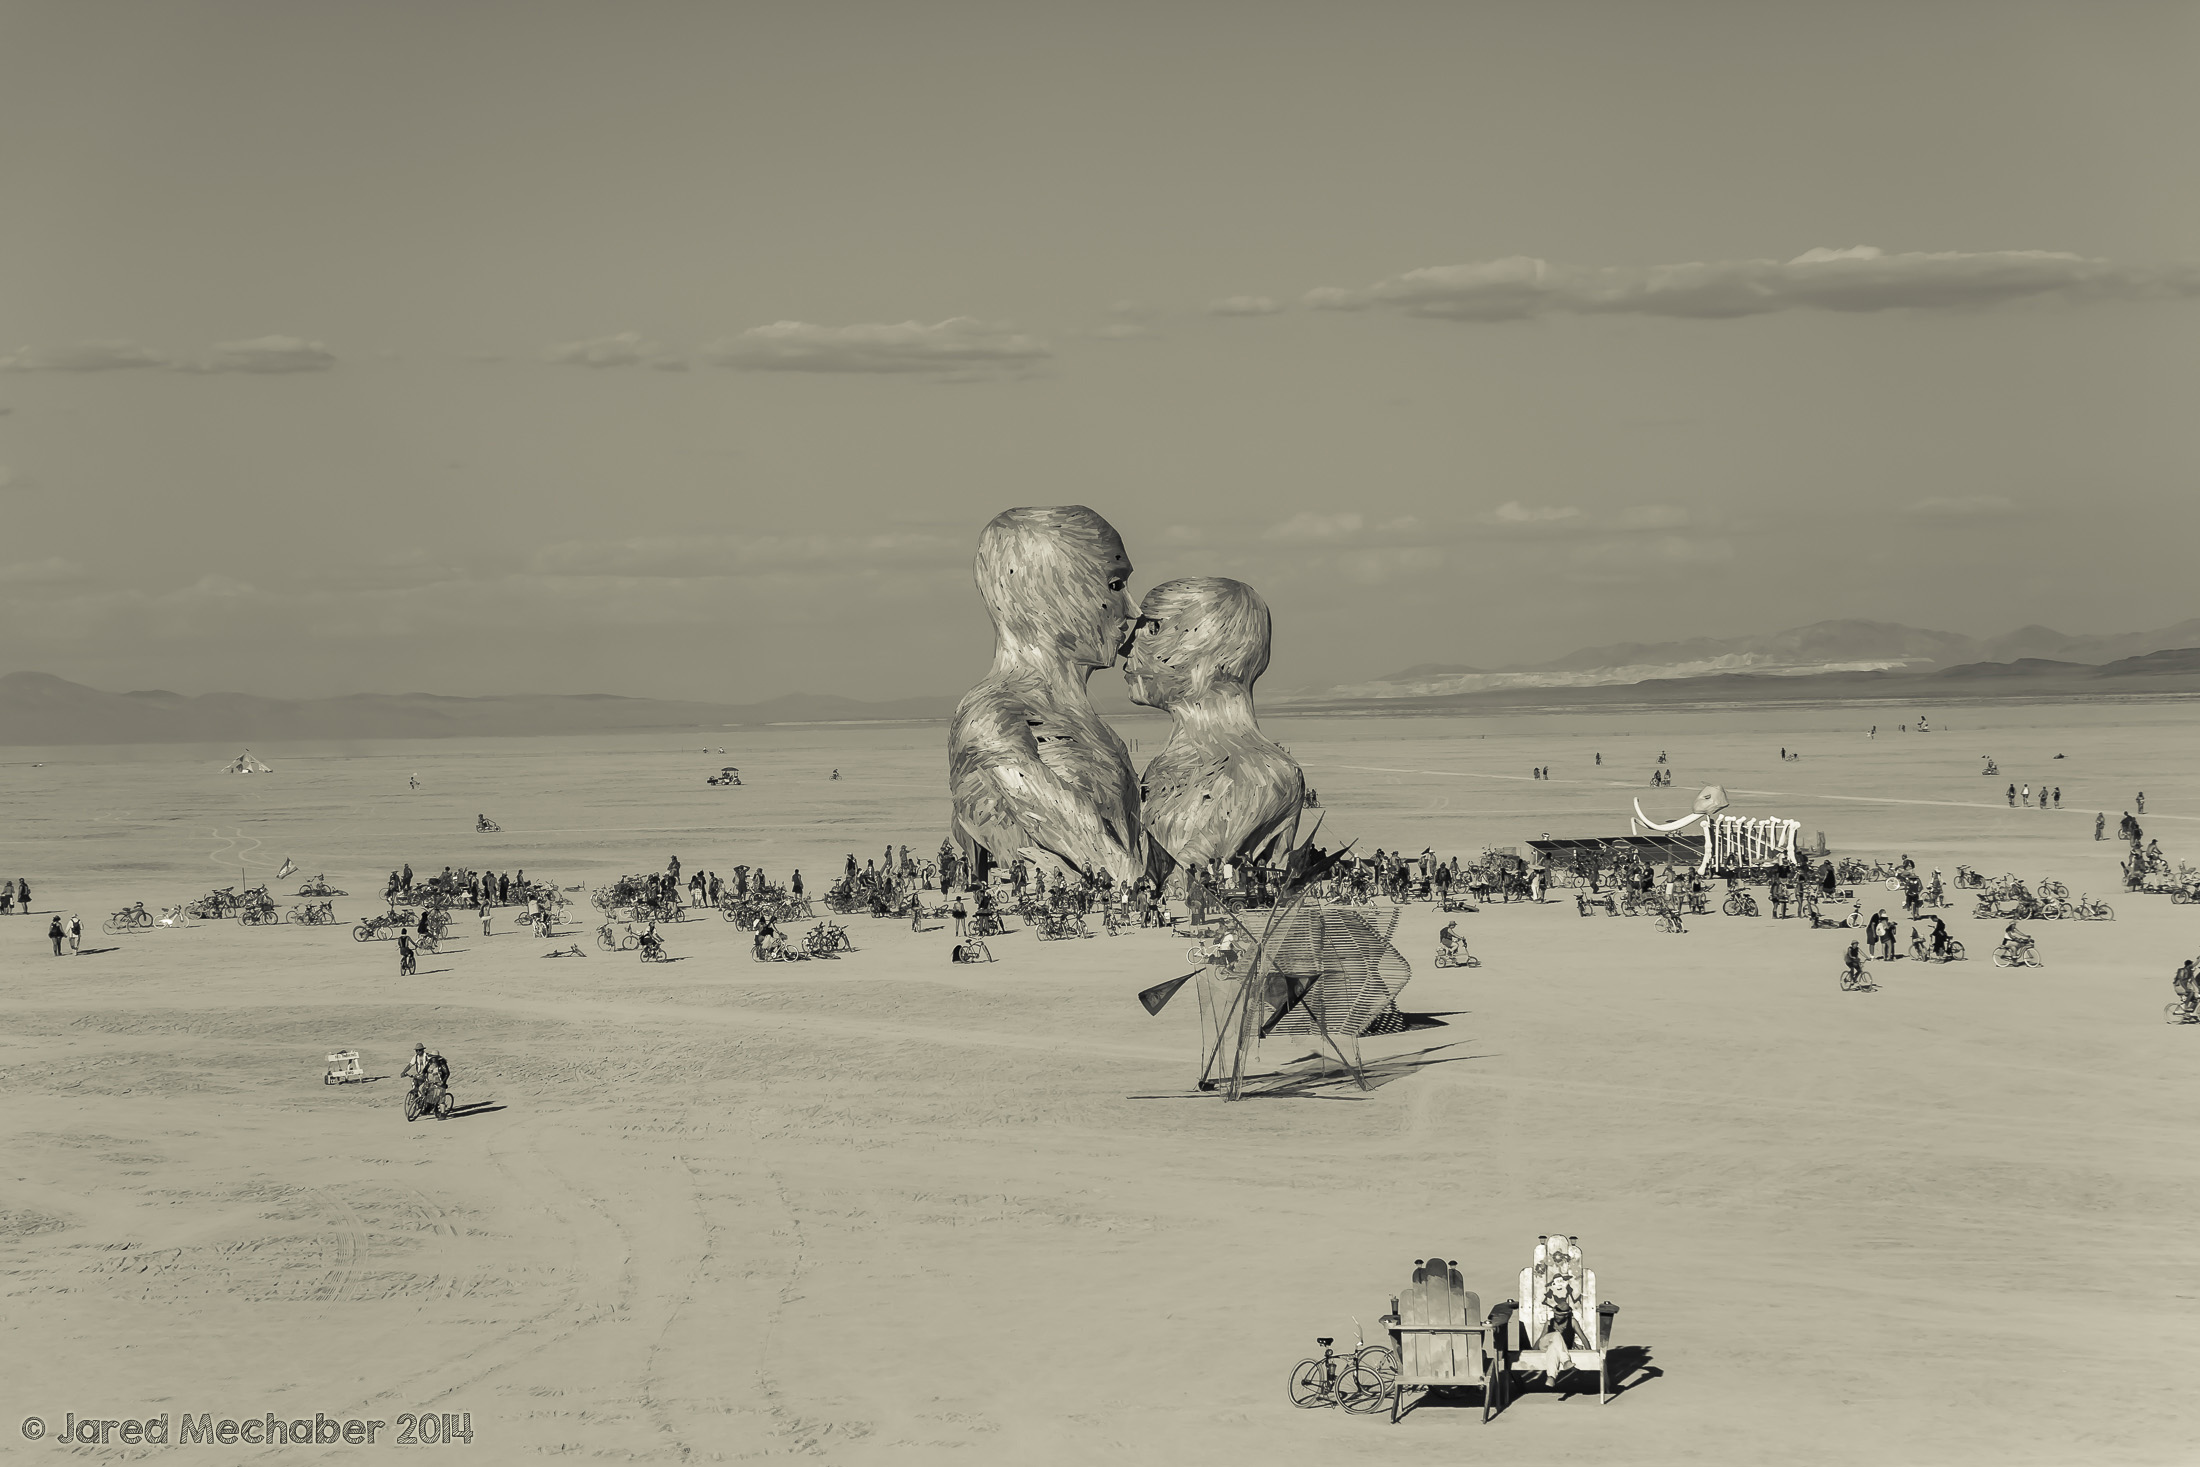 18-140826_Burningman_1160.JPG